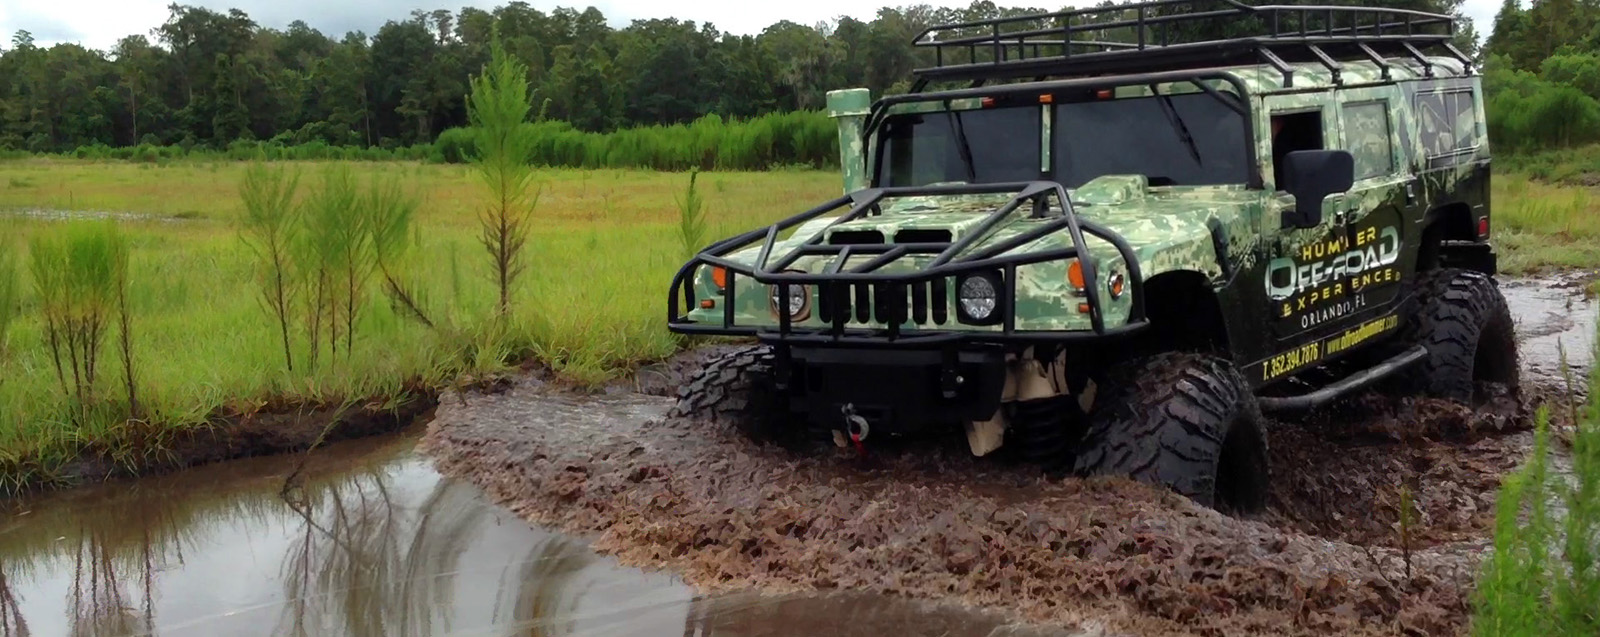 off-road hummer experience Orlando